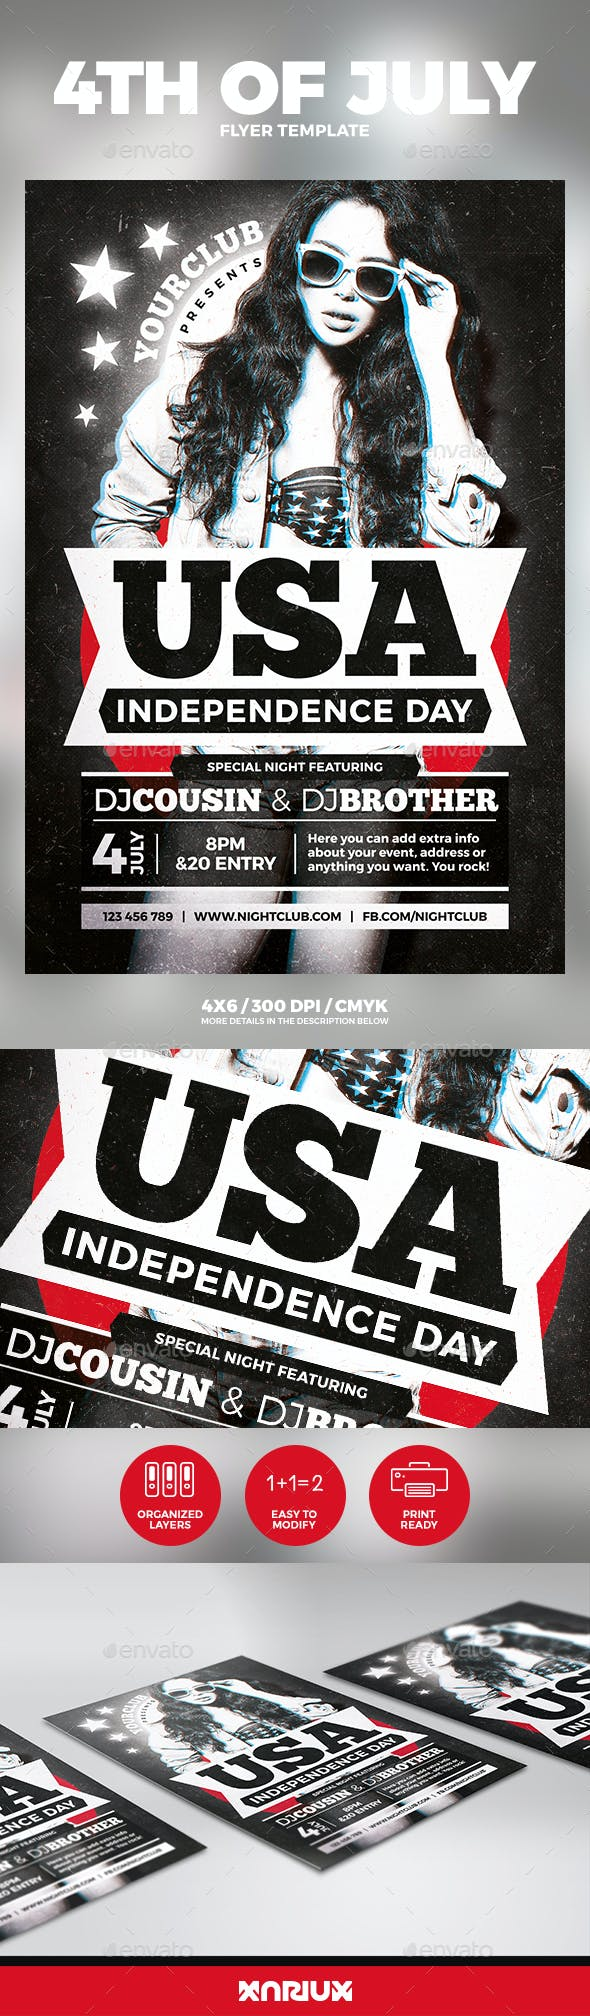 4th of july independence day flyer events flyers